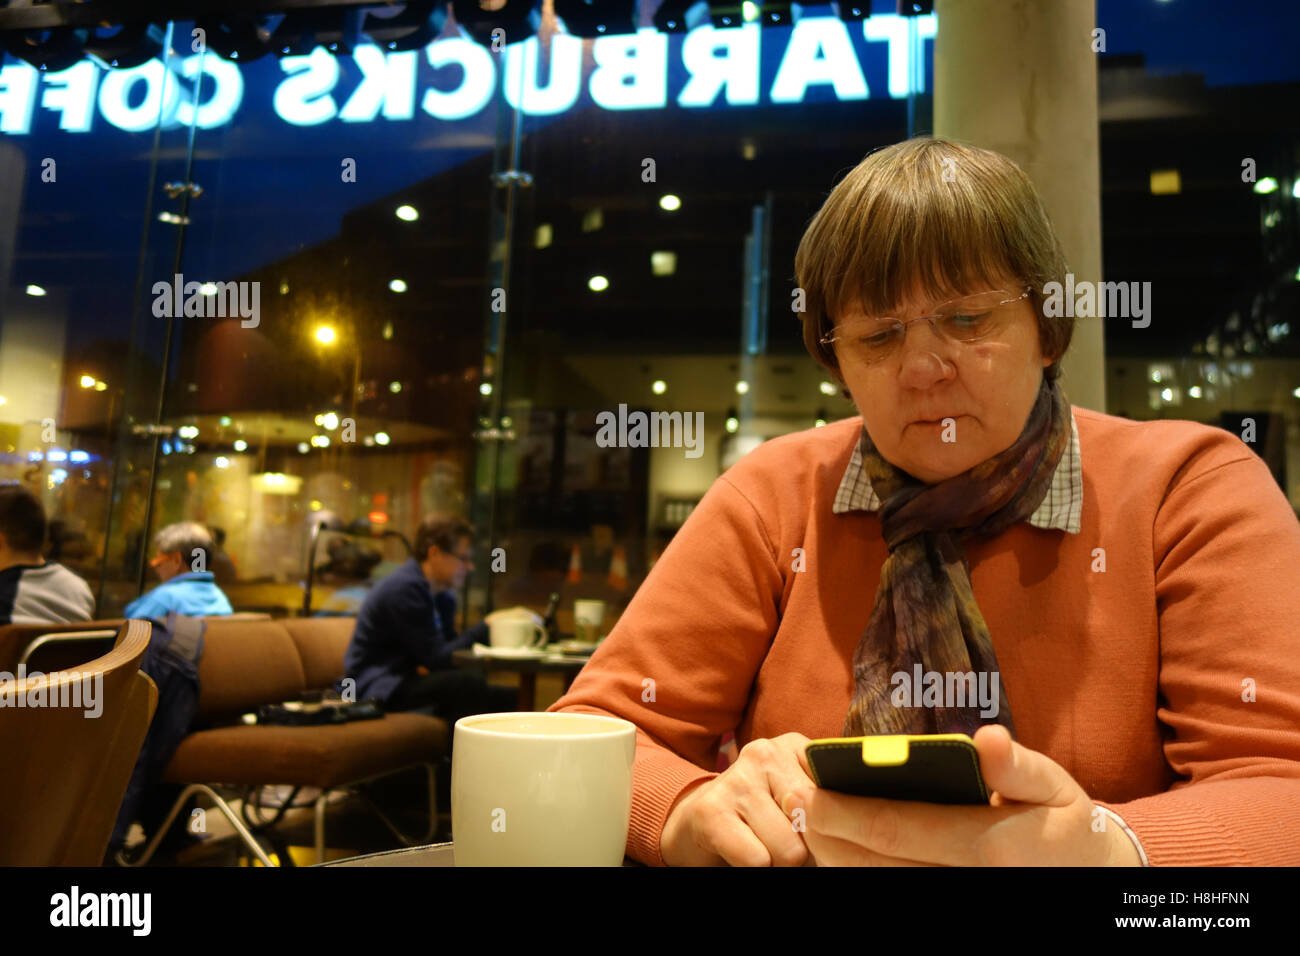 Woman using smartphone in cafe - Stock Image